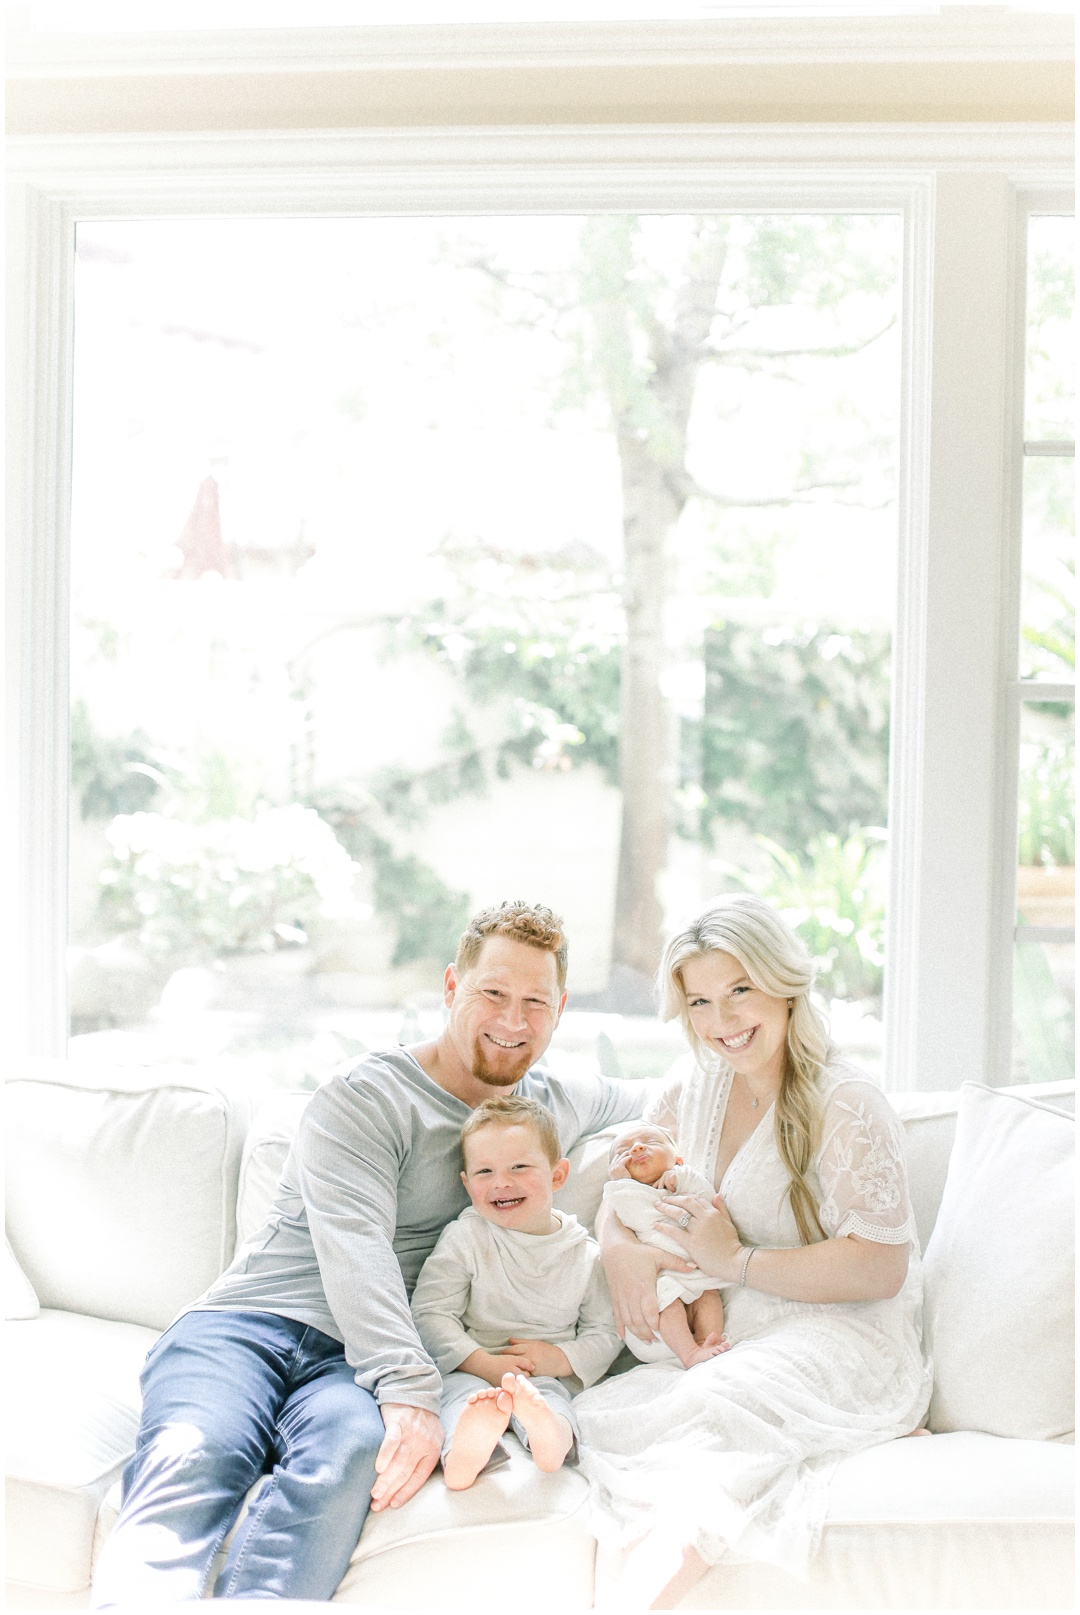 Newport_Beach_Newborn_Light_Airy_Natural_Photographer_Newport_Beach_Photographer_Orange_County_Family_Photographer_Cori_Kleckner_Photography_Newport_Beach_Photographer_newborn_kole_calhoun56_kole_calhoun_Jennifer_Calhoun_Knox_Calhoun_3781.jpg